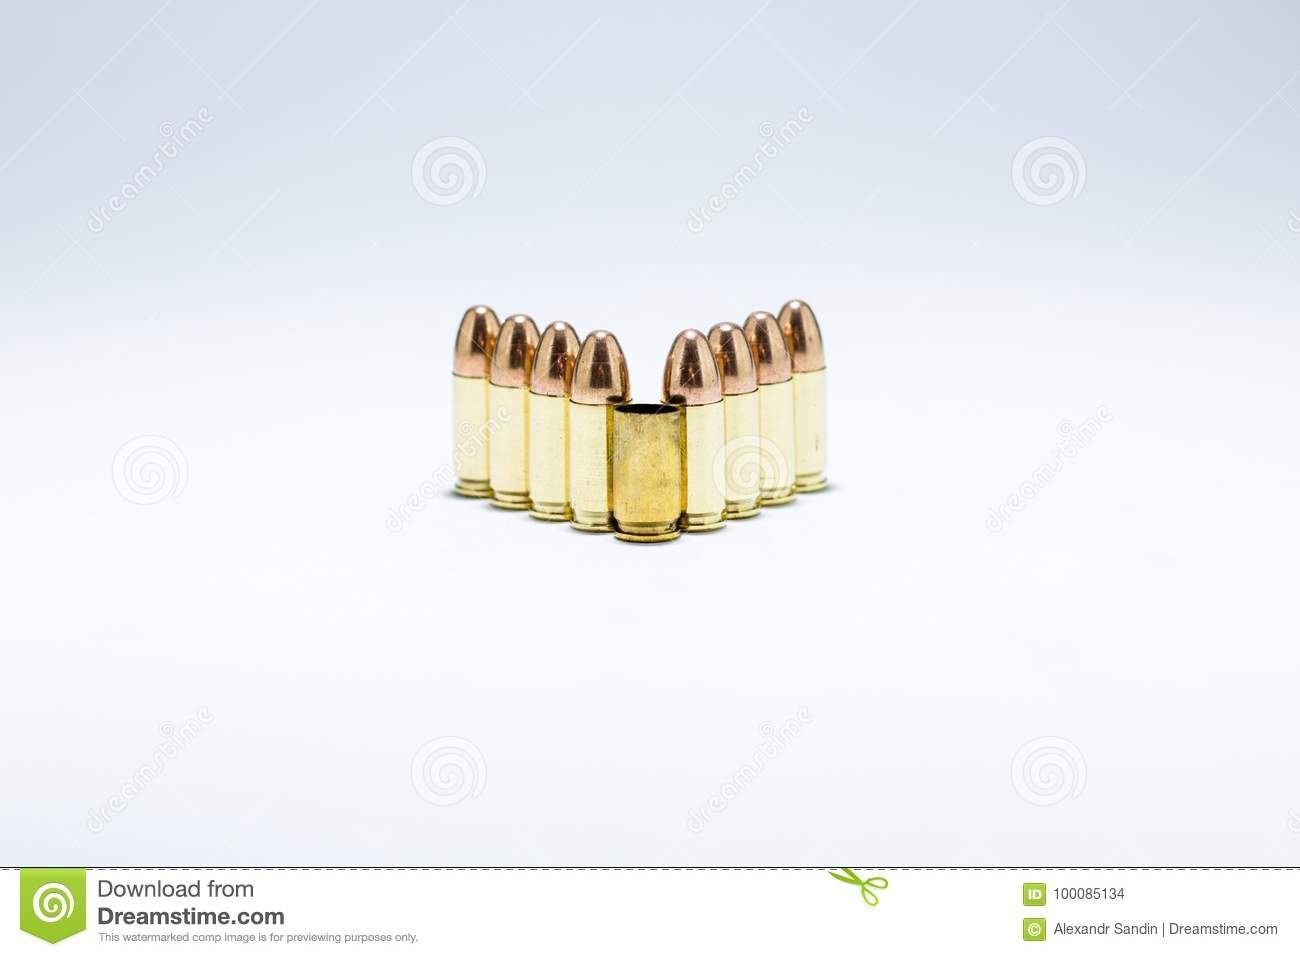 hight resolution of 9 mm cartridges with one empty shell